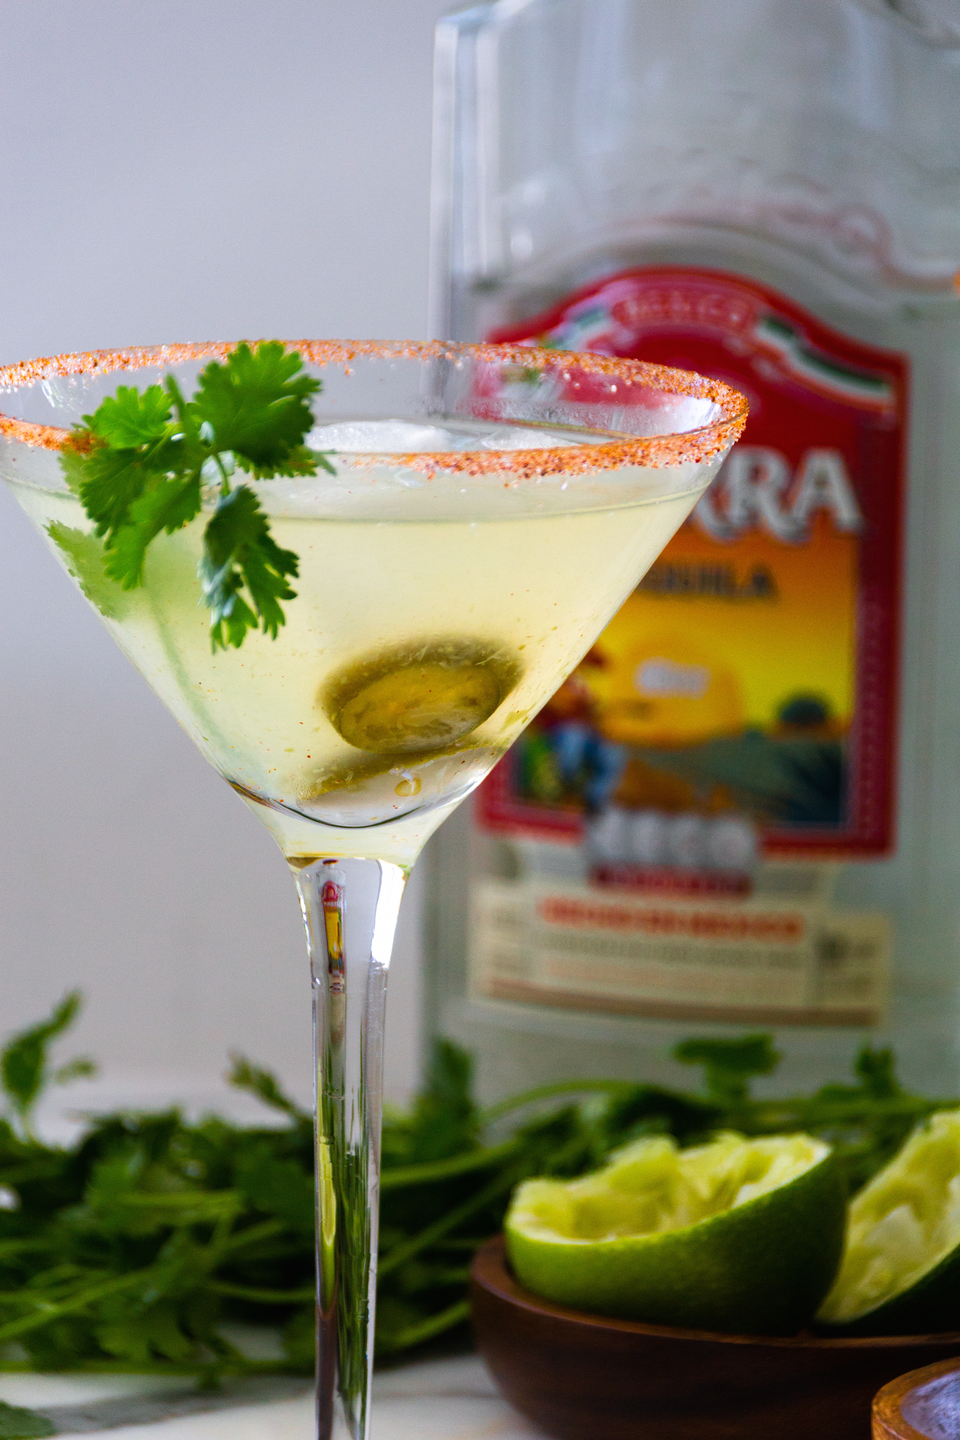 """<p>Margaritas are notorious for having tons of calories, but they taste so damn good they're hard to resist — especially with a side of guac. The good news is, you can enjoy this classic margarita from <a href=""""https://www.appetiteforenergy.com/low-carb-spicy-margarita-keto-sugar-free/"""" rel=""""nofollow noopener"""" target=""""_blank"""" data-ylk=""""slk:Appetite for Energy"""" class=""""link rapid-noclick-resp"""">Appetite for Energy</a> without wrecking your diet. This recipe uses liquid stevia to cut back on the carbs and throws in jalapeño for a spicy kick.</p>"""